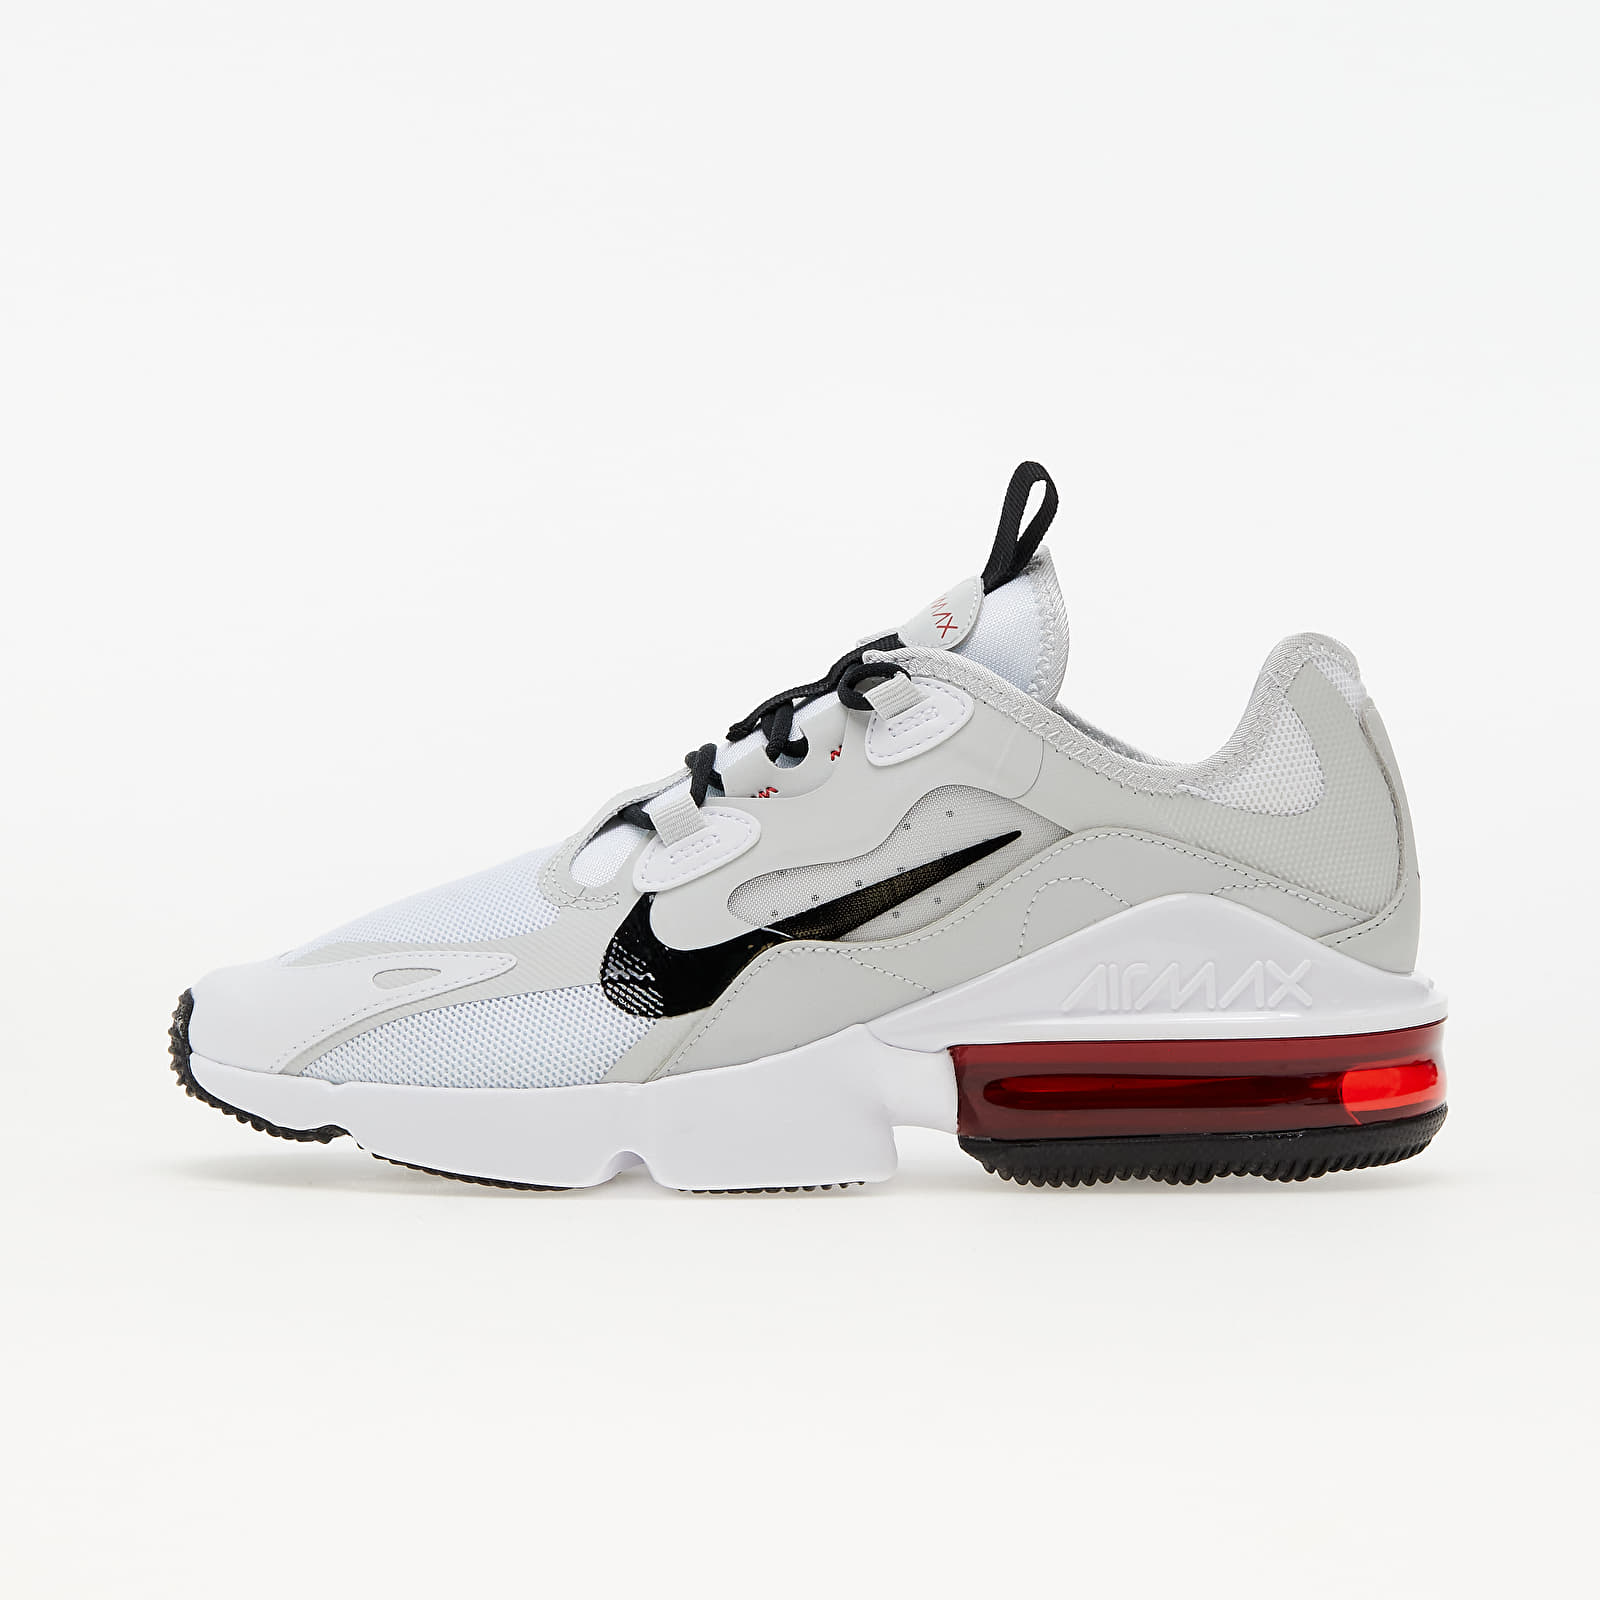 Nike Air Max Infinity 2 White/ Black-University Red-Photon Dust EUR 45